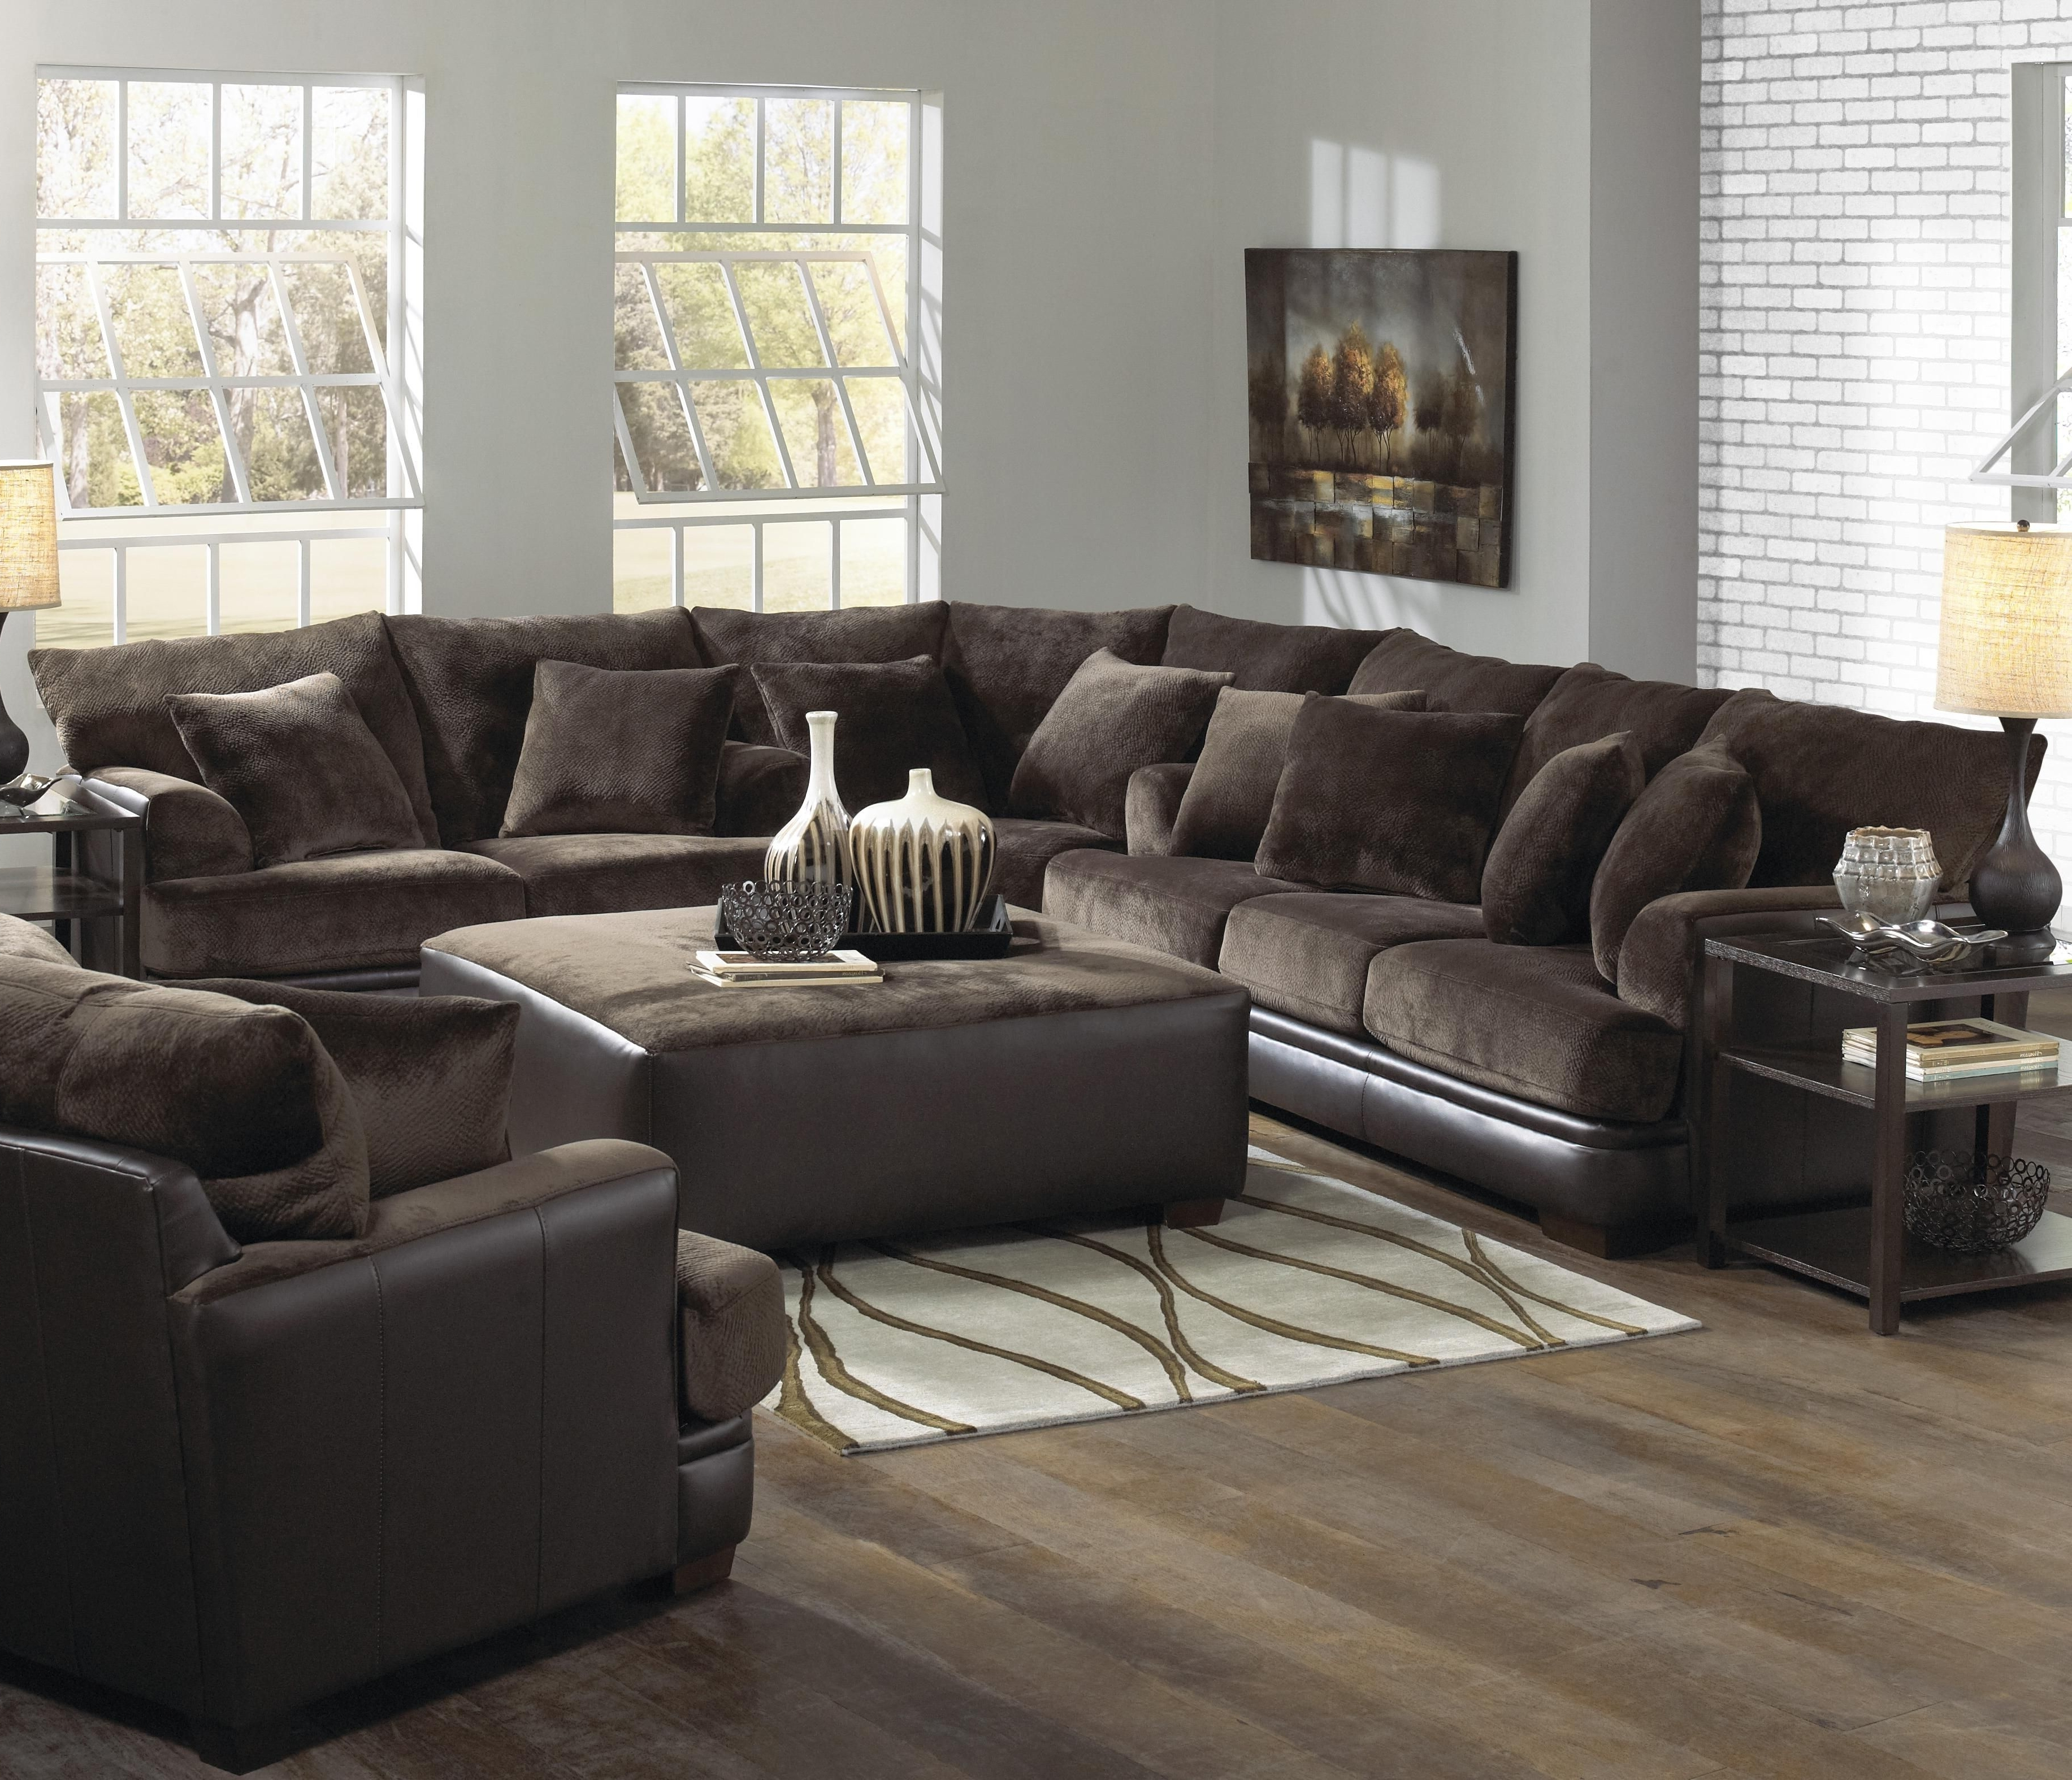 Extra Large U Shaped Sectionals Inside Well Known Barkley Large L Shaped Sectional Sofa With Right Side Loveseat (Gallery 3 of 20)